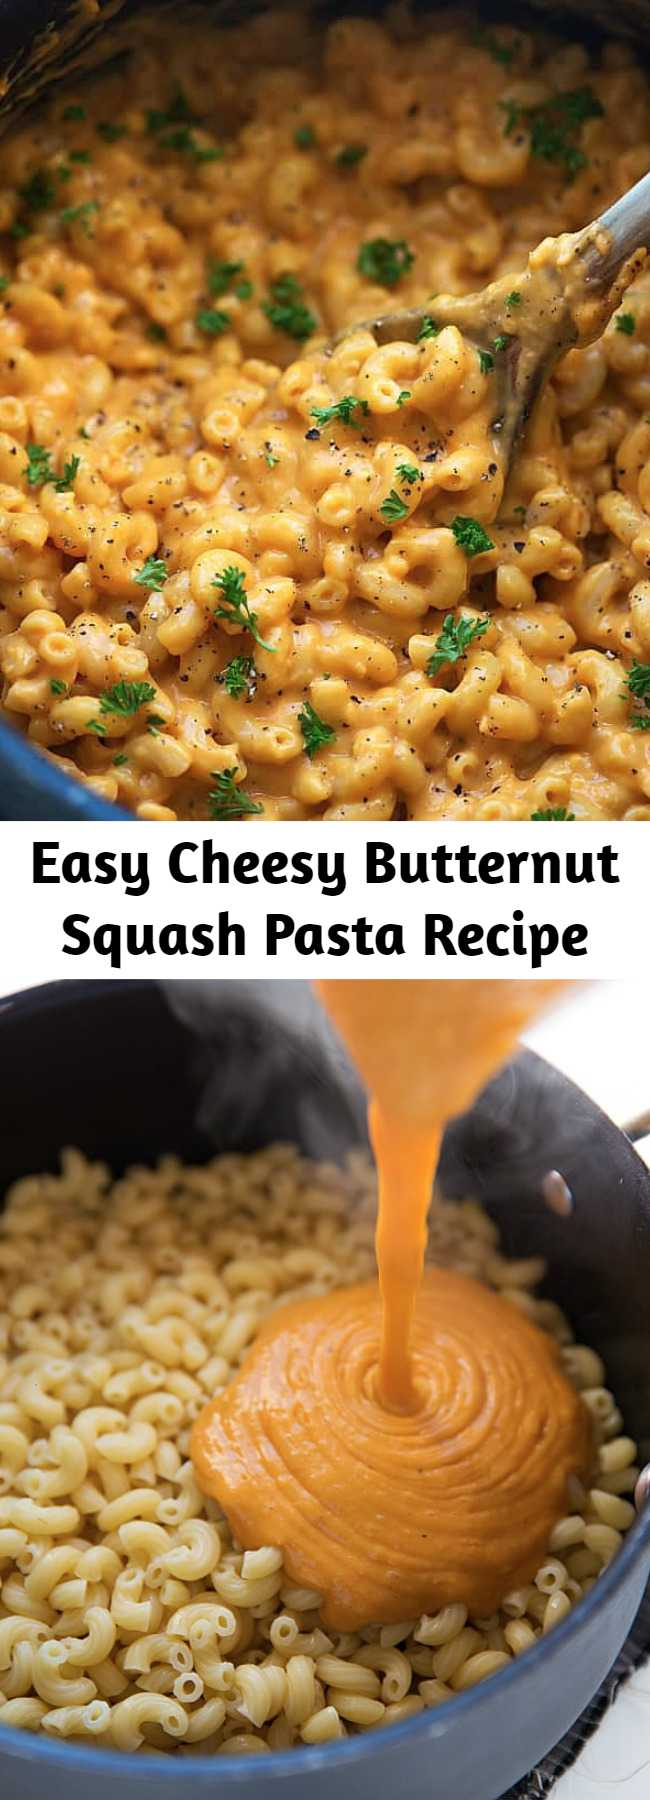 Easy Cheesy Butternut Squash Pasta Recipe - A quick and simple pasta dish that is cheesy and made with a seasonal ingredient– butternut squash! A healthier alternative that the family will love!